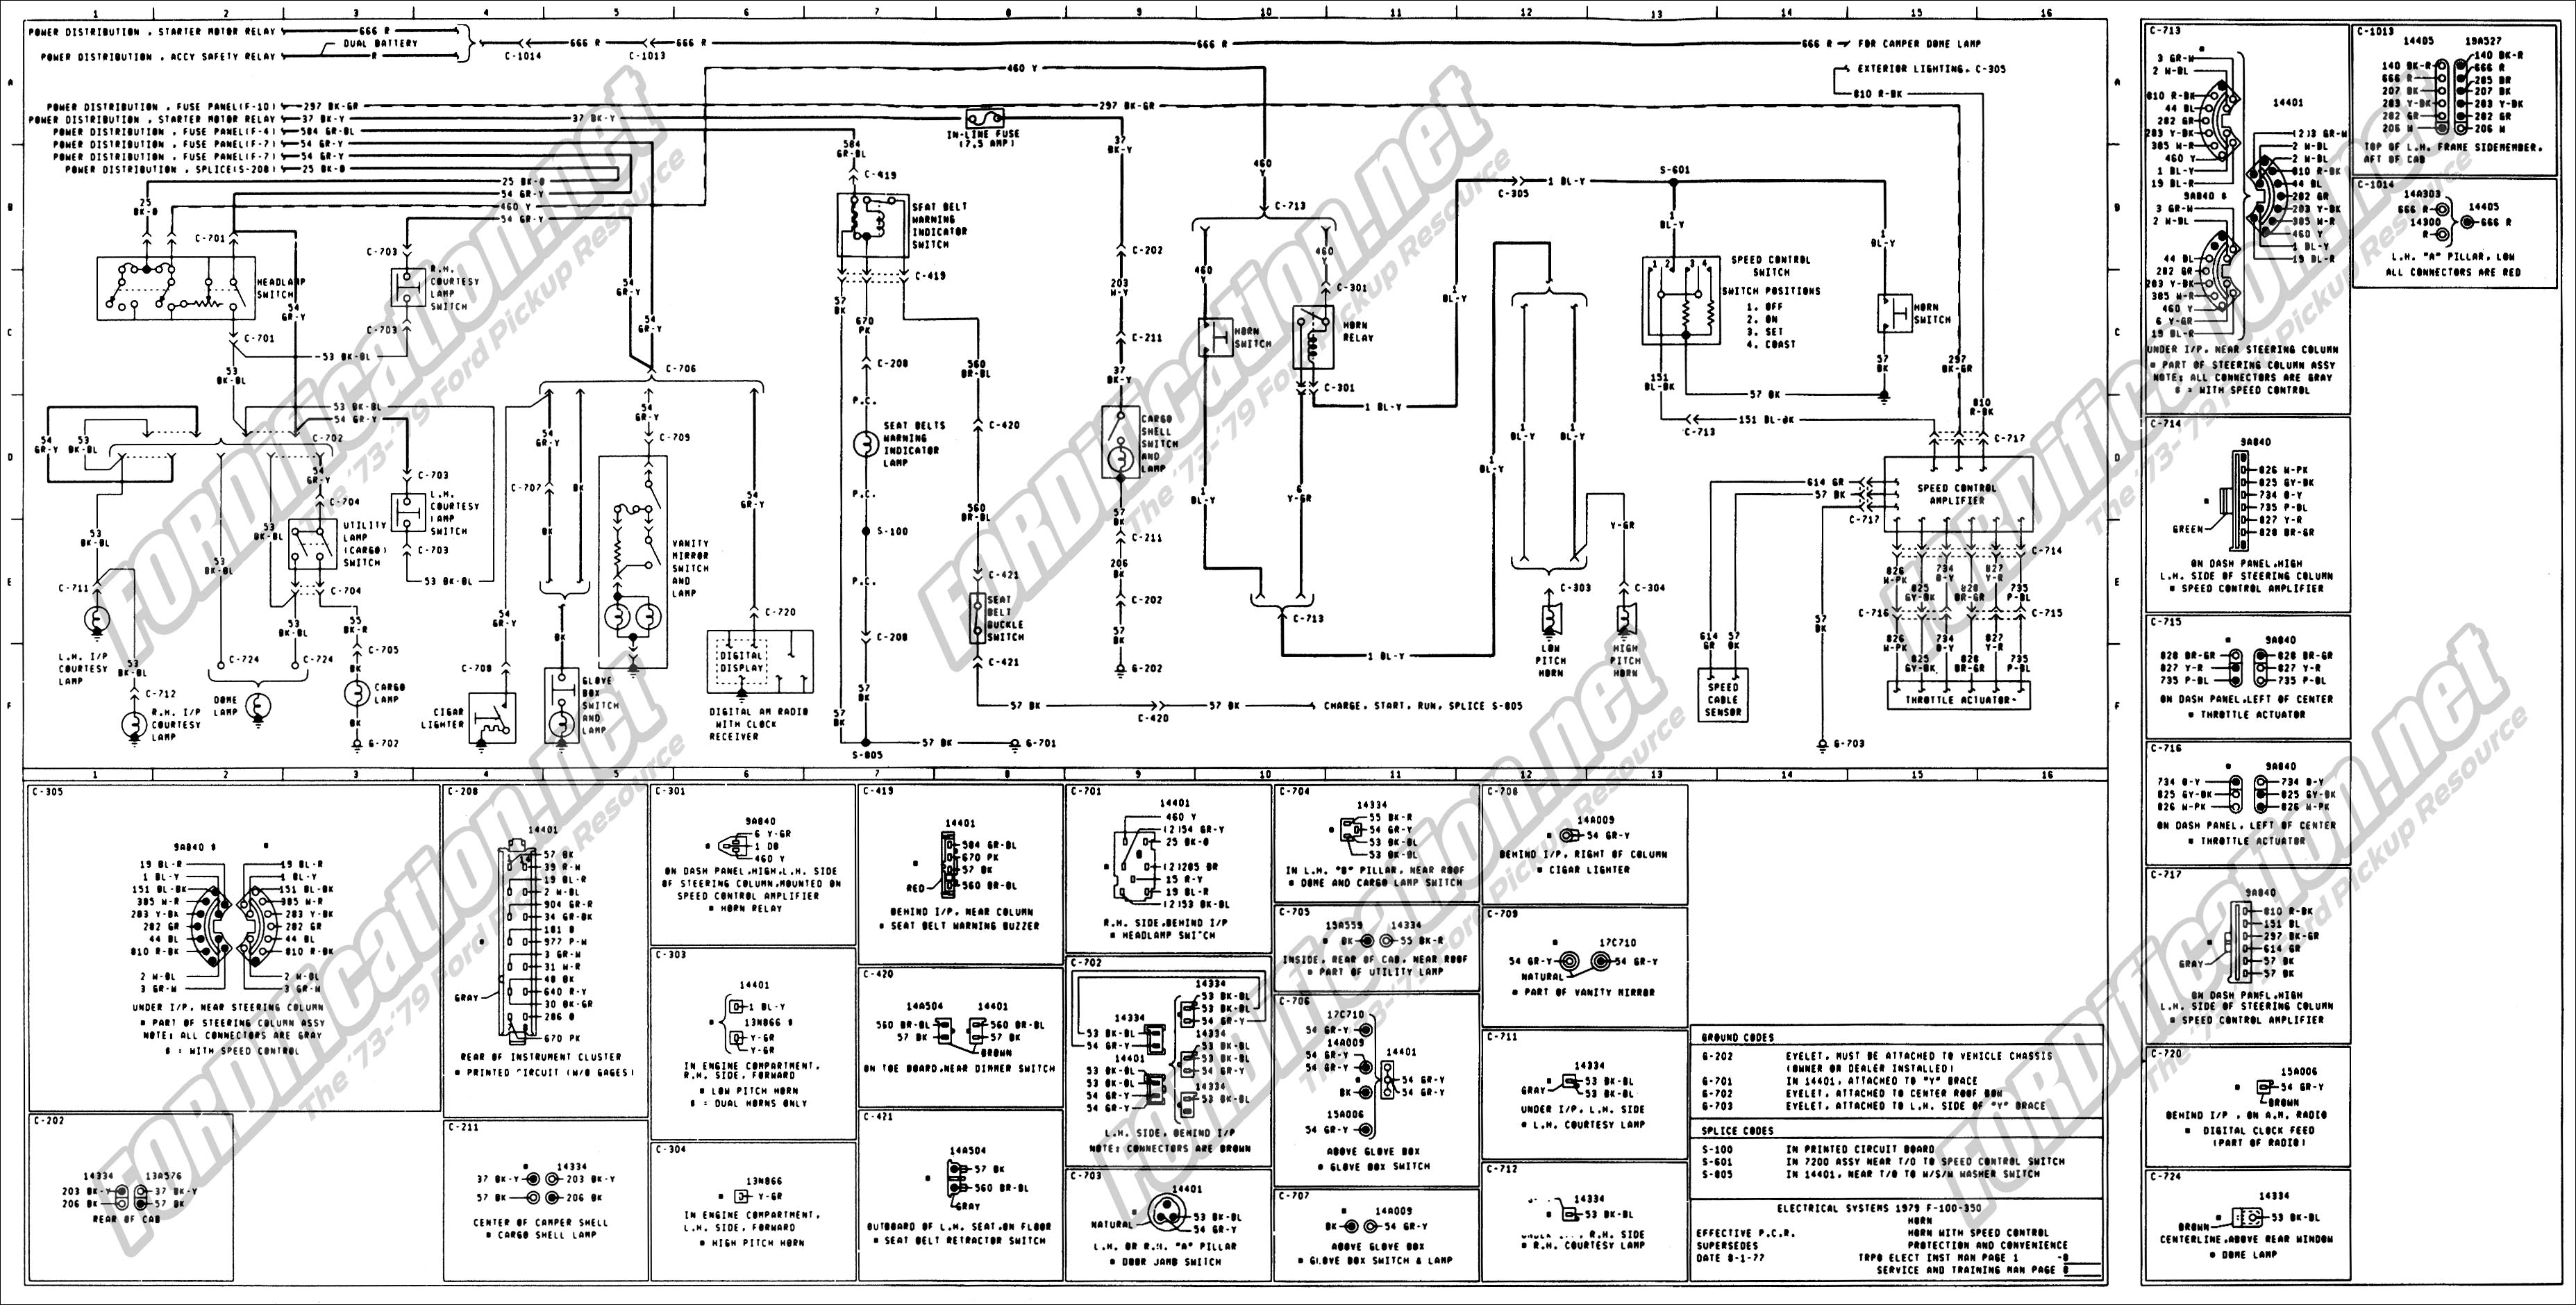 1973 1979 ford truck wiring diagrams schematics fordification net rh fordification net 66 Ford F100 Wiring Diagram 71 Ford F100 Wiring Diagram